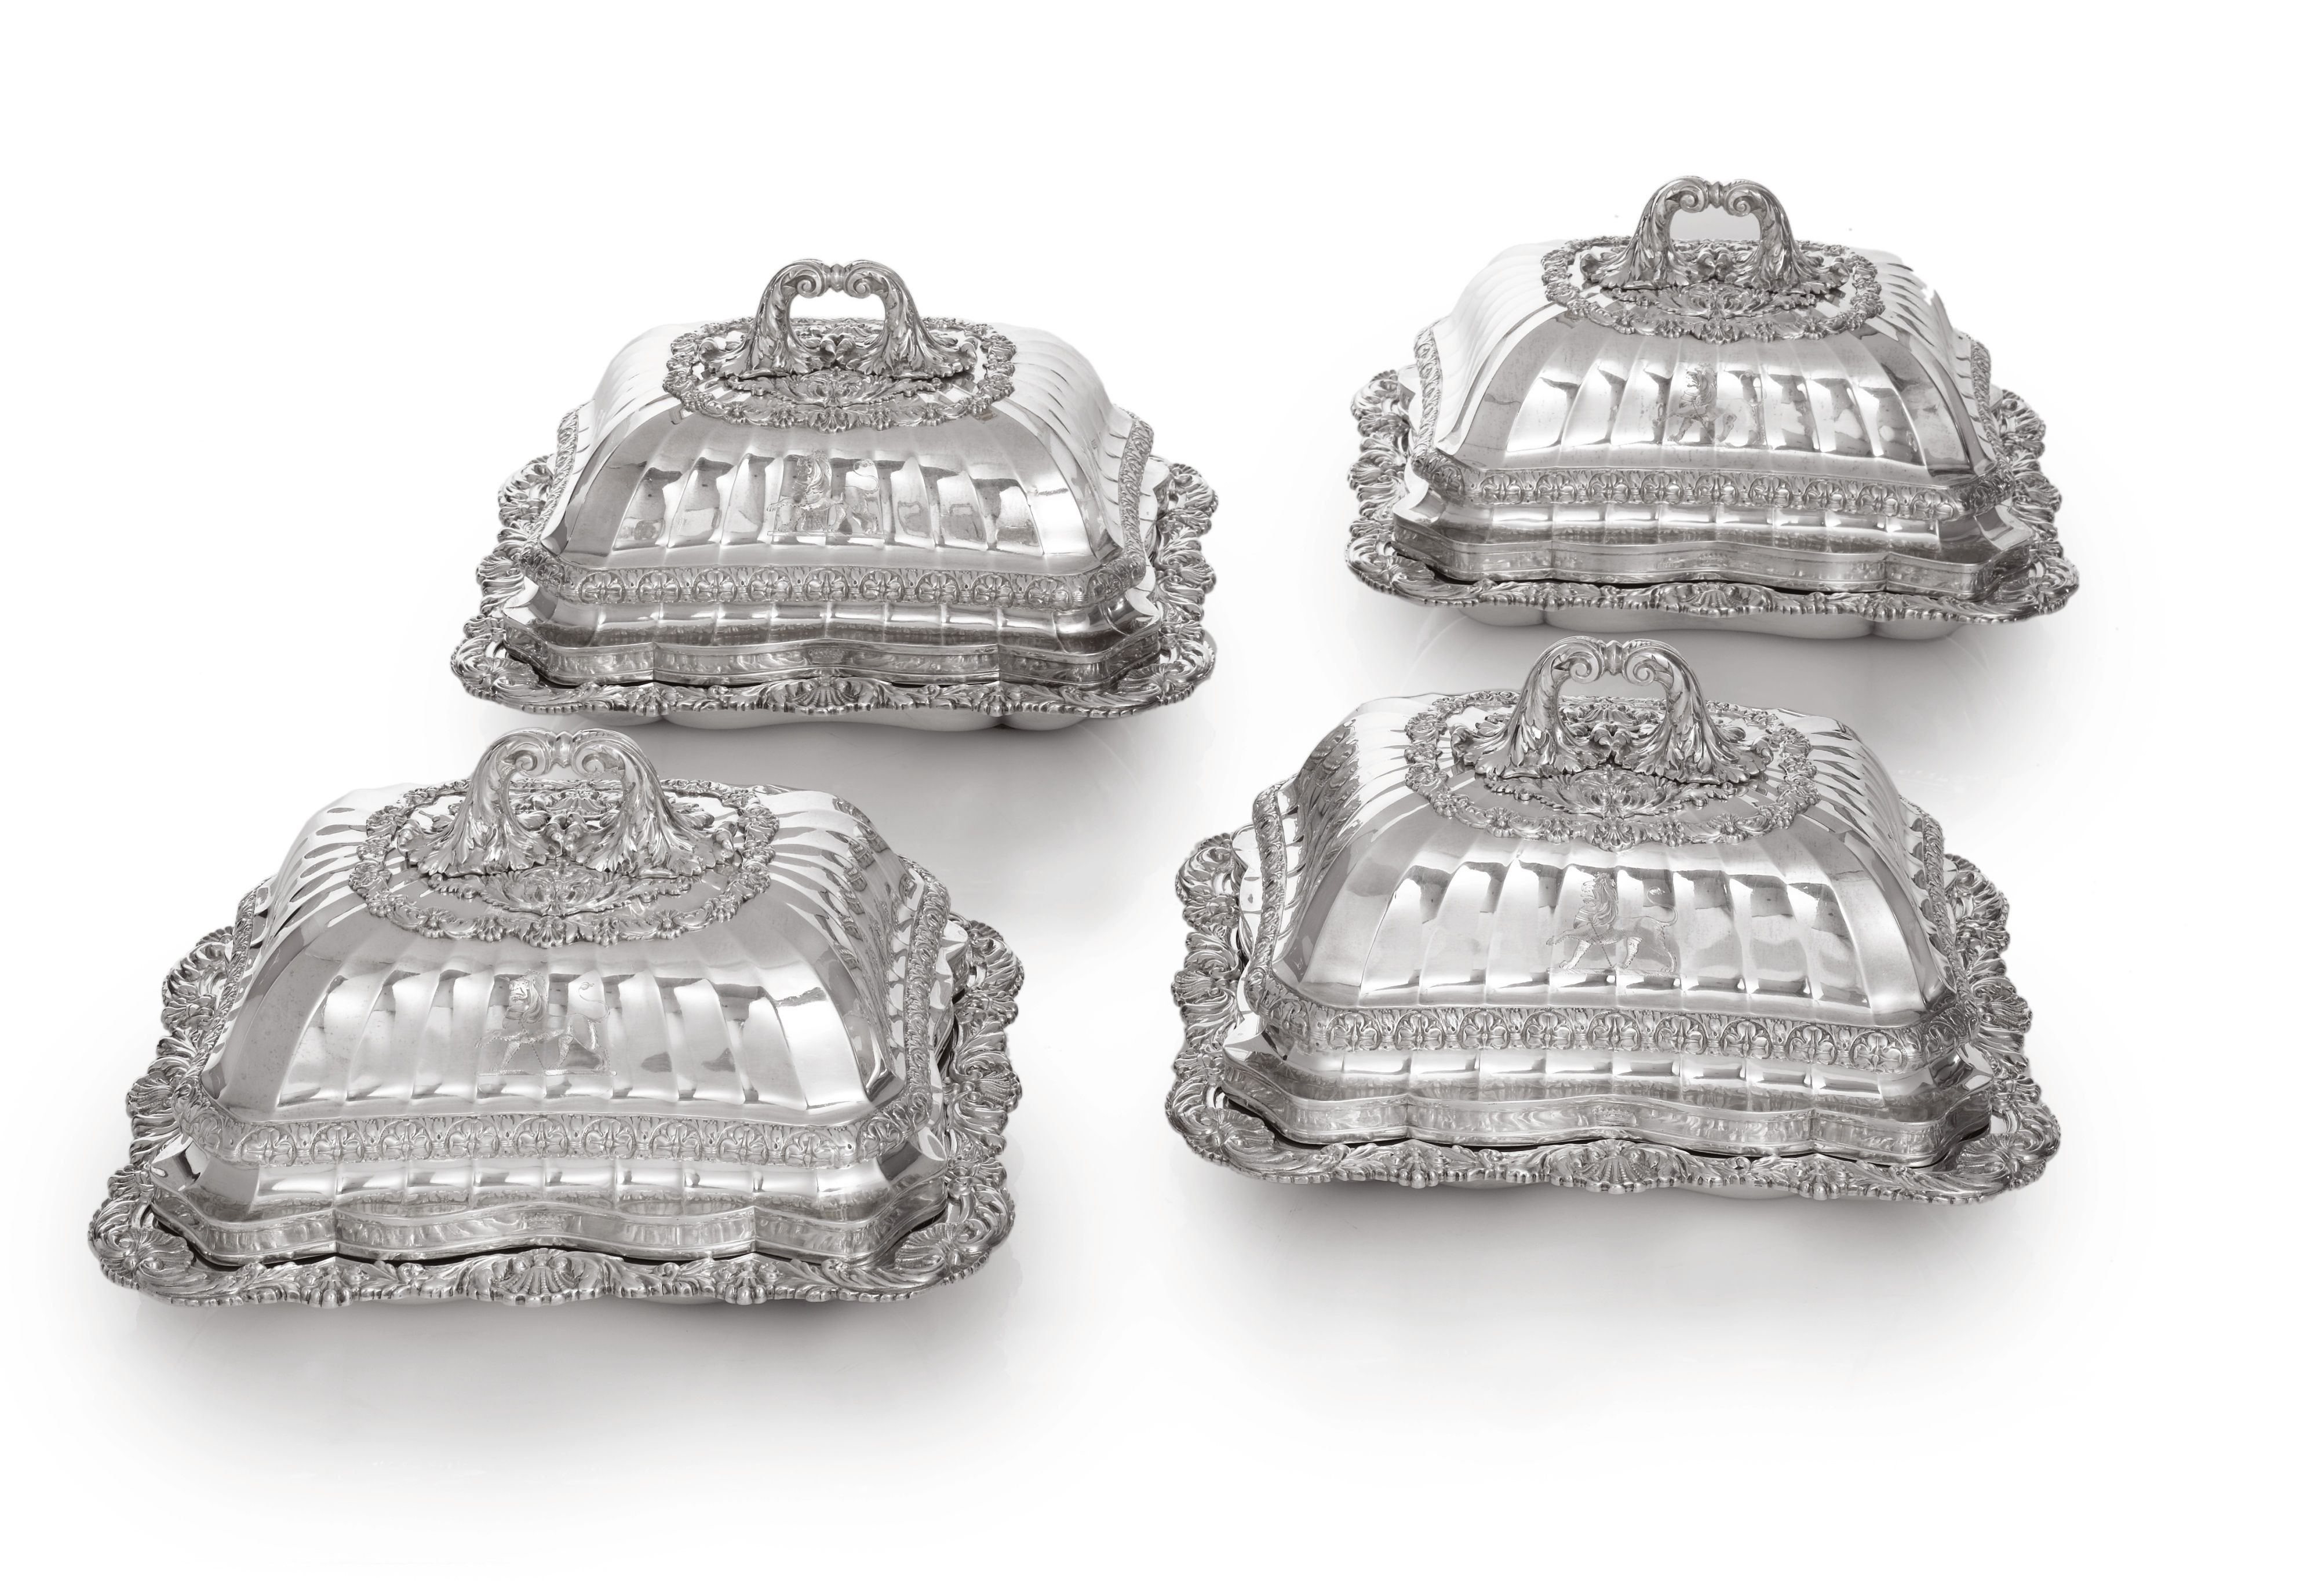 A SET OF FOUR GEORGE IV SILVER ENTRÉE DISHES & COVERS, the design attributed to Edward Hodges Baily, Philip Rundell for Rundell, Bridge and Rundell, London, 1821 SOLD. 74,500 USD